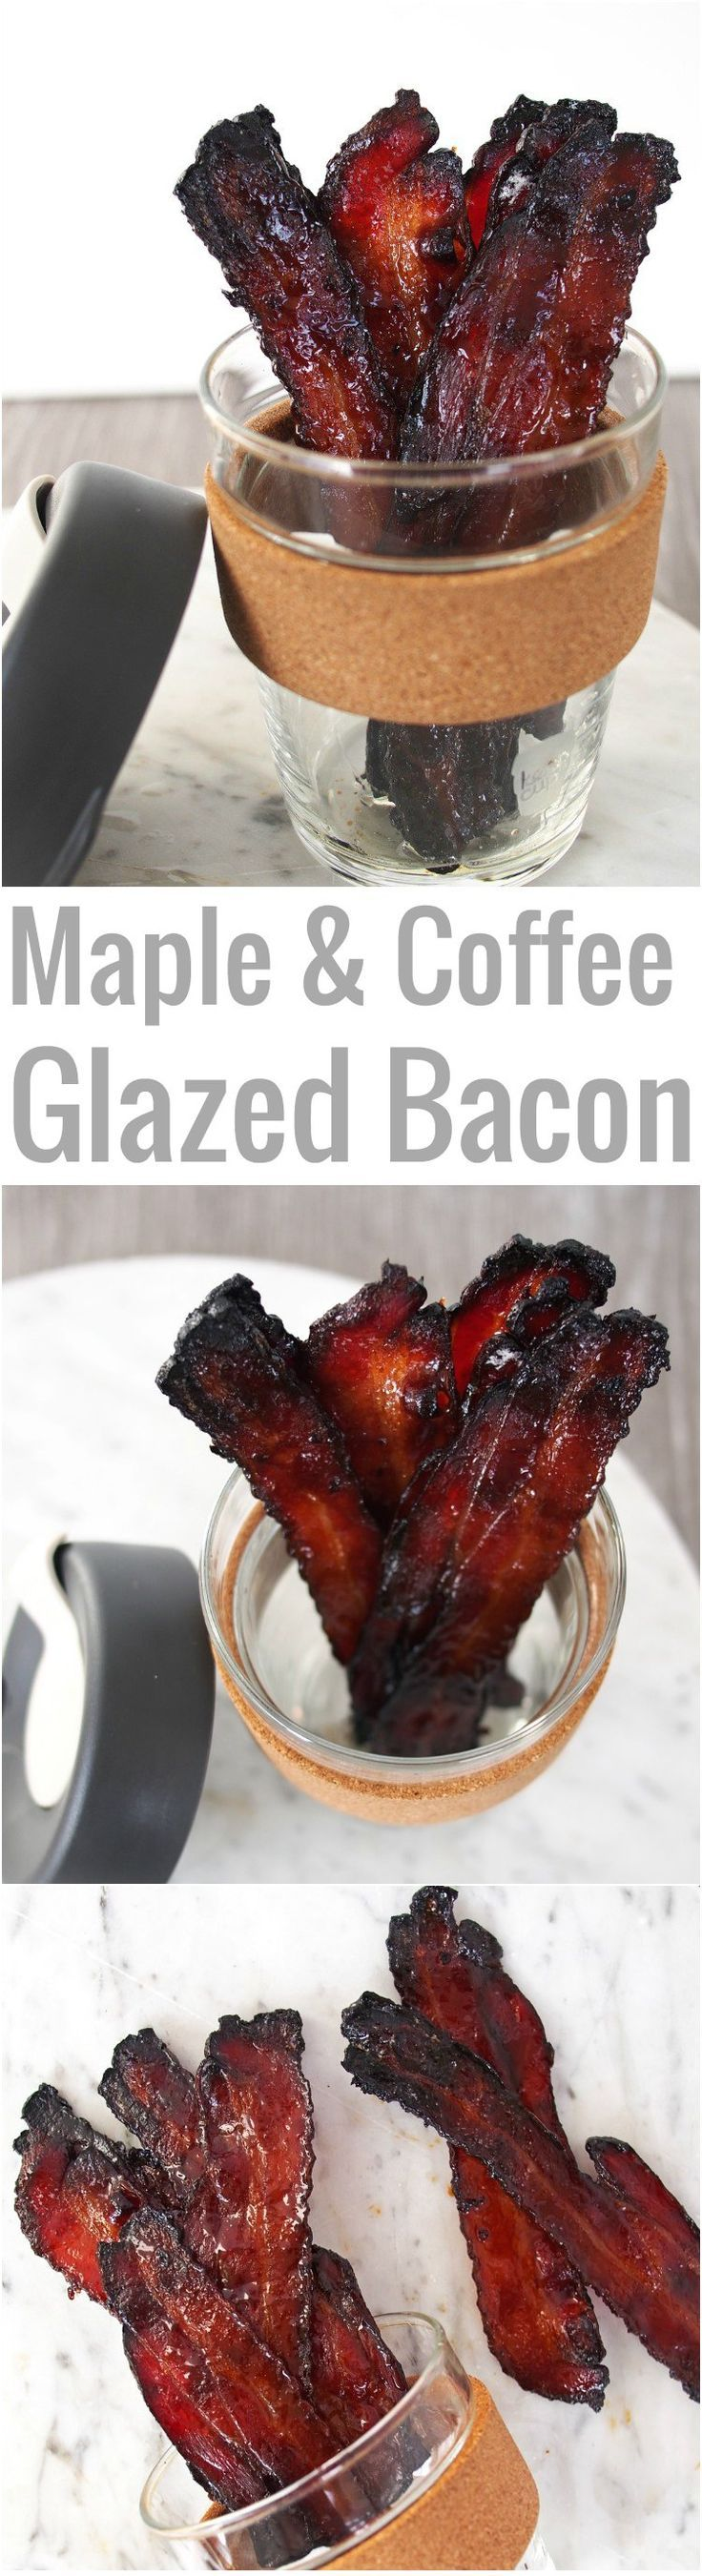 Pete Cooks : Recipe of the Week - Maple and Coffee Glazed Bacon sent in by @Tallfitmom45